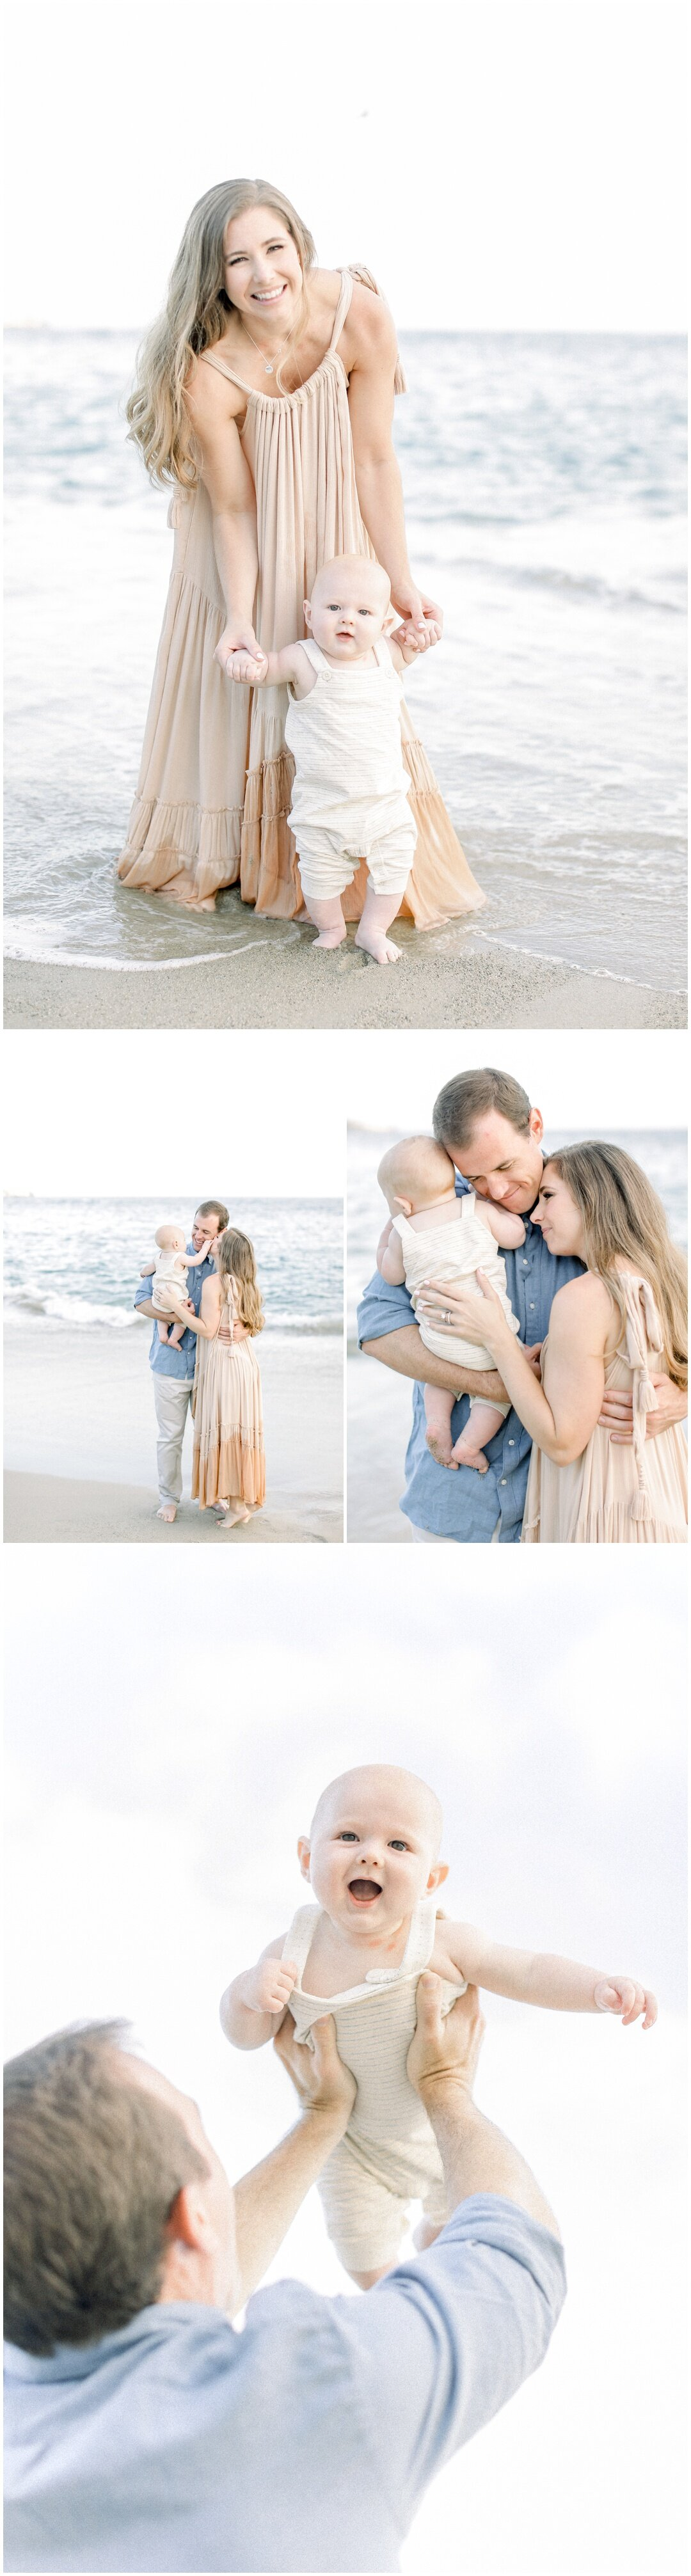 Newport+Beach+Newborn+Maternity+Photographer+Orange+County+Family+Photographer+Cori+Kleckner+Photography+Forgatch+Family+Matt+Kelley+Jack+Forgatch+_4408.jpg